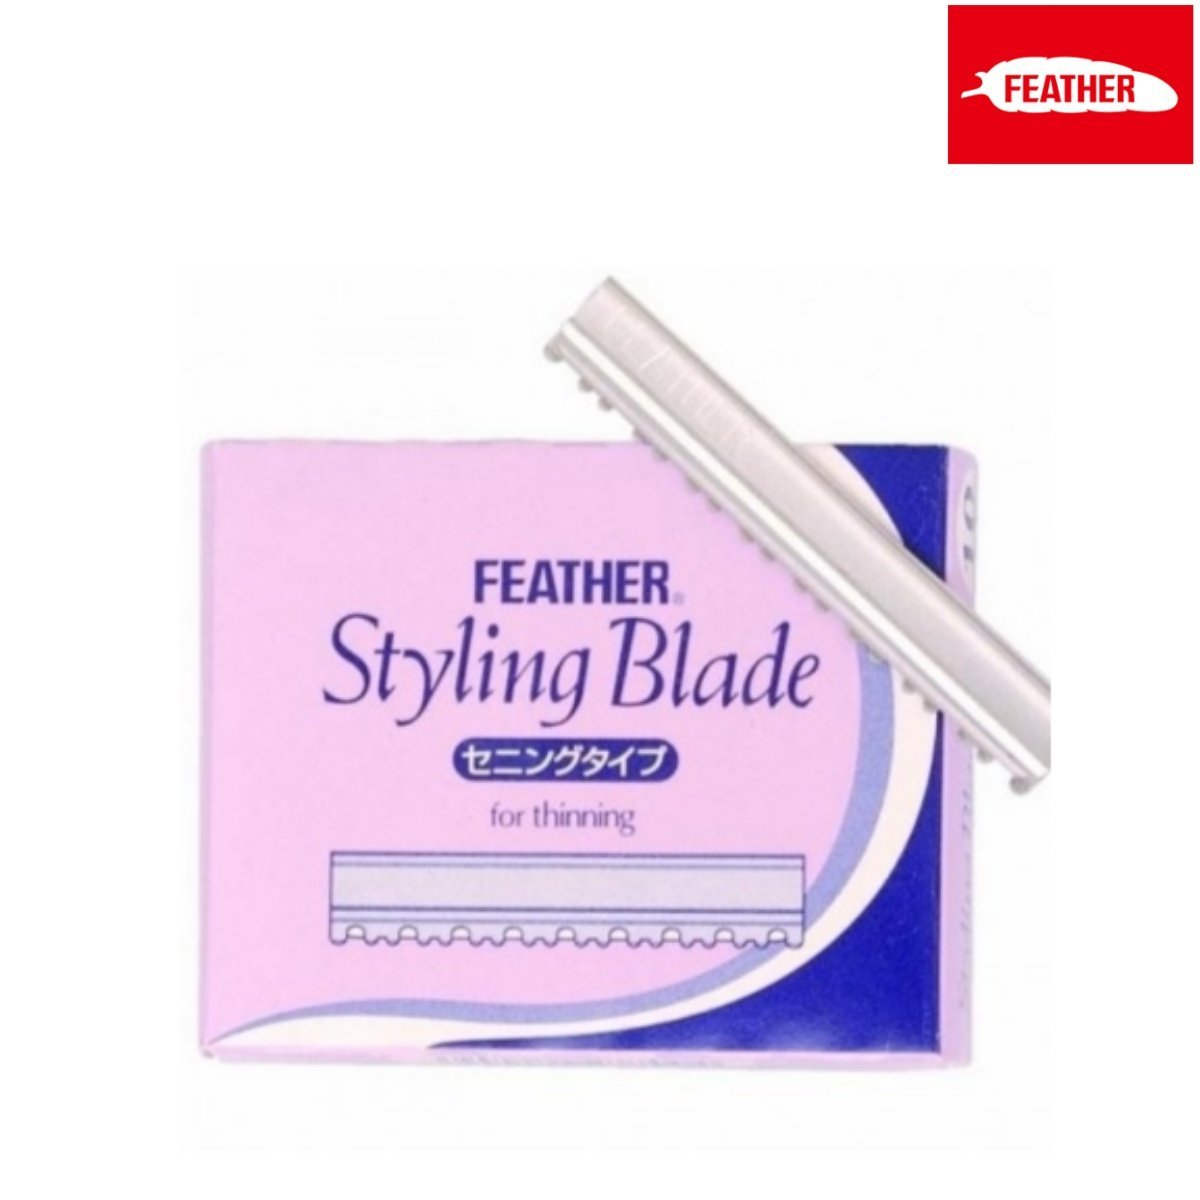 Feather Styling Razor Thinning Replacement Blade - Japan Scissors